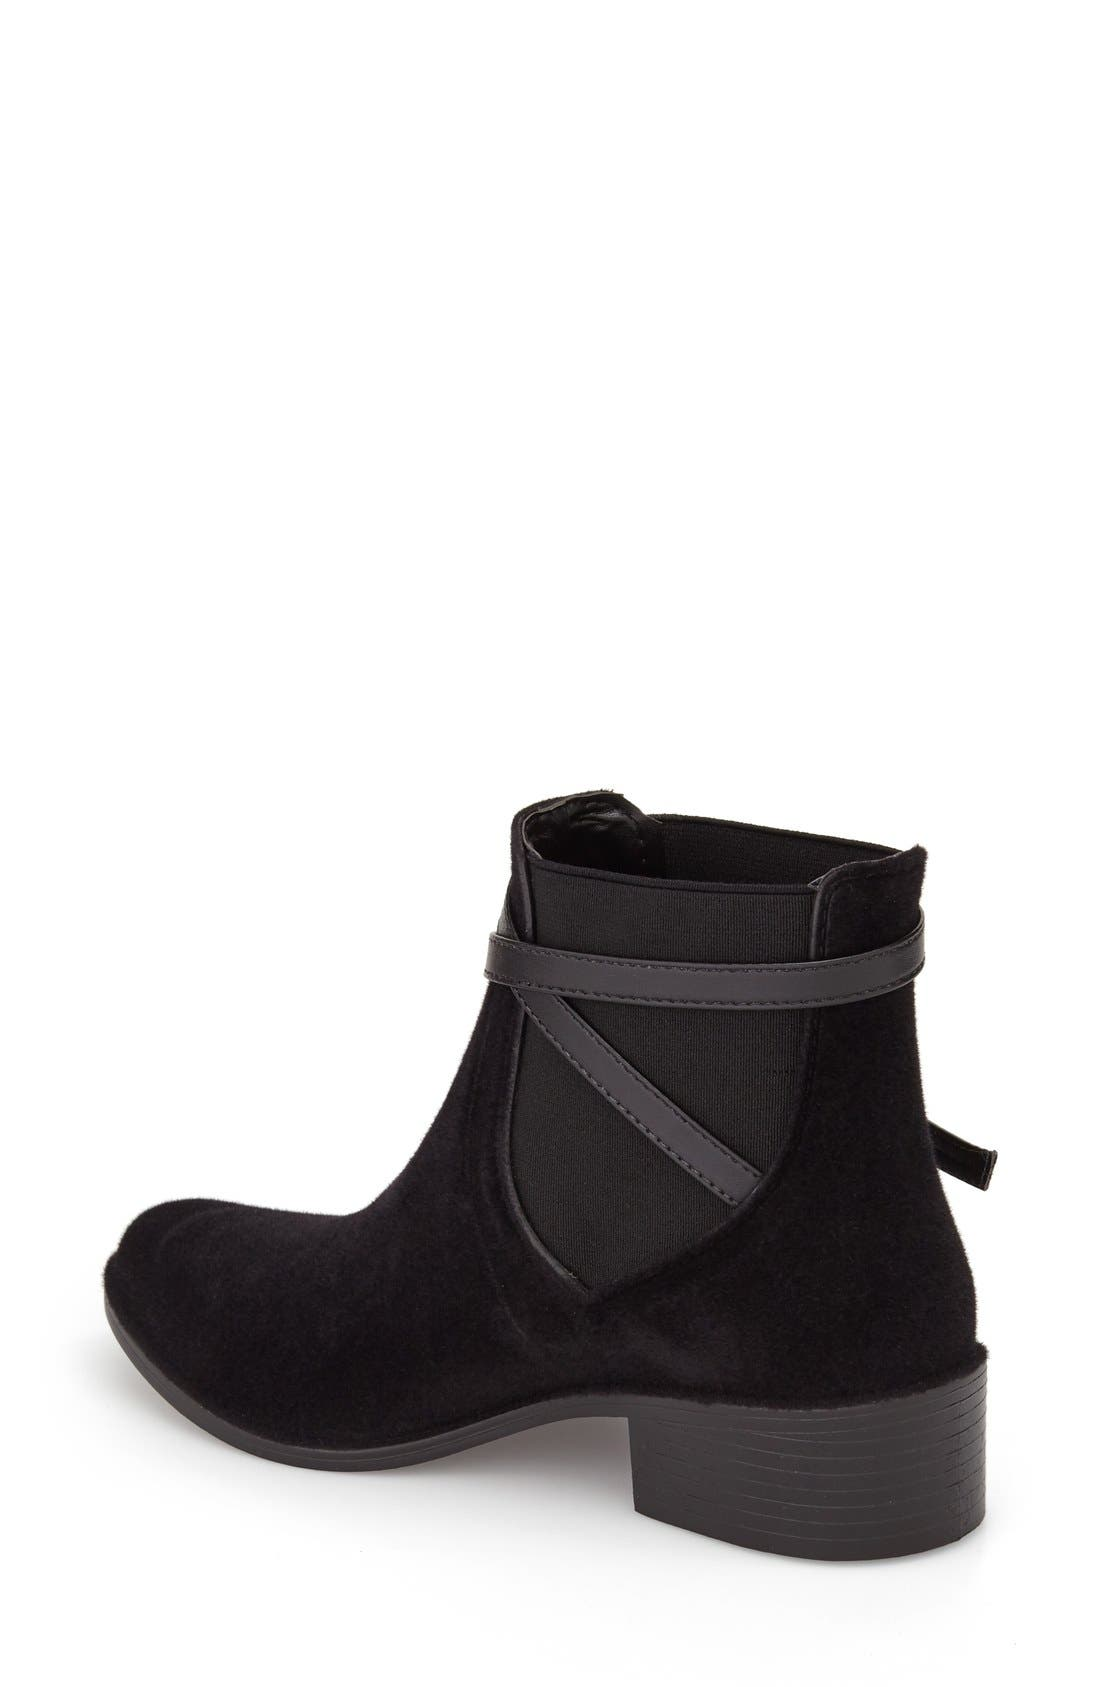 Alternate Image 2  - Bernardo Peony Water Resistant Chelsea Boot (Women)